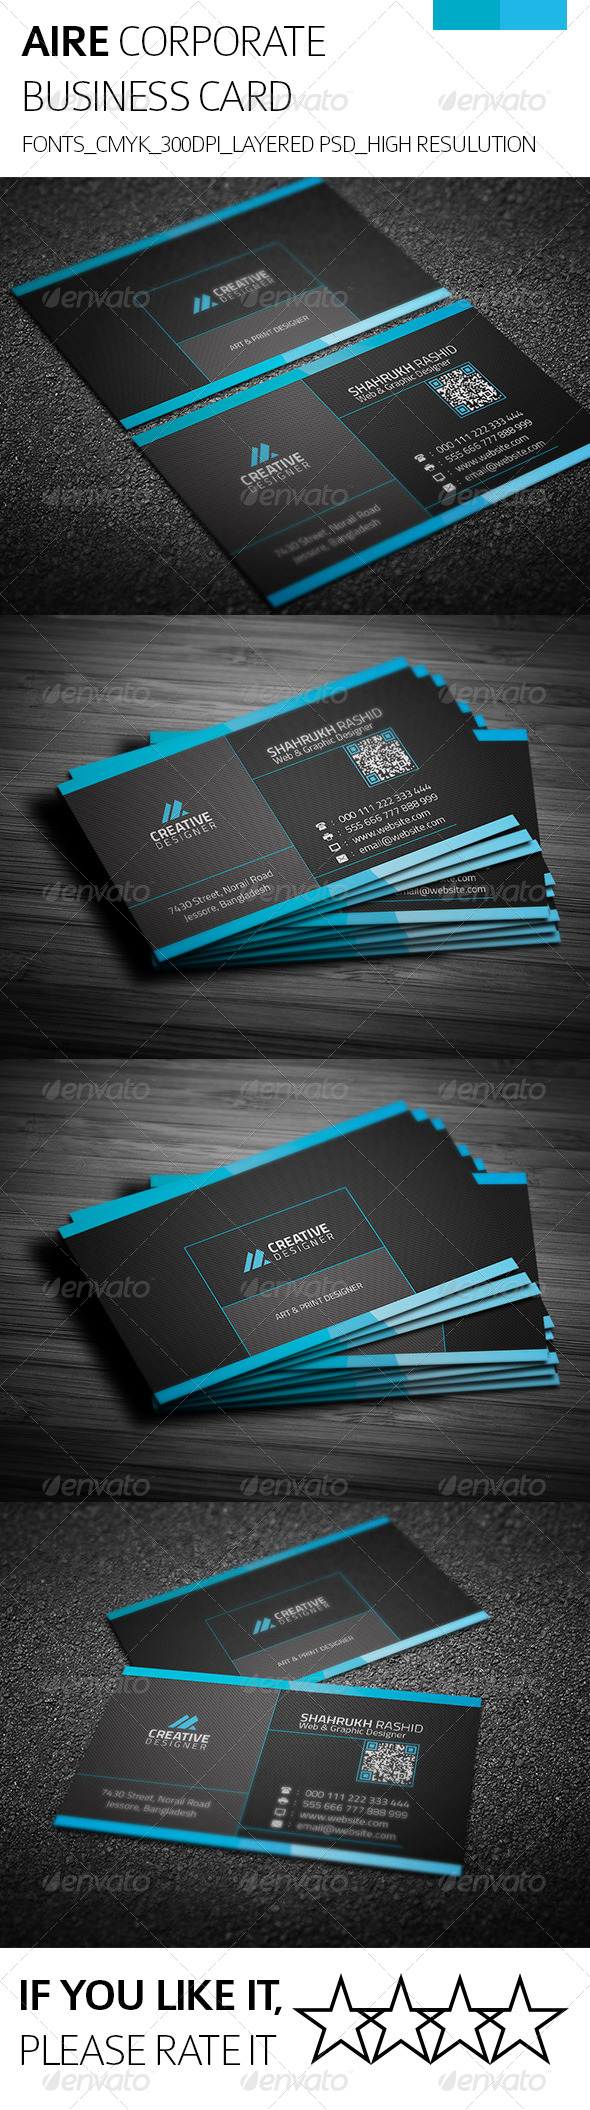 GraphicRiver Aire & Corporate Business Card 8225737